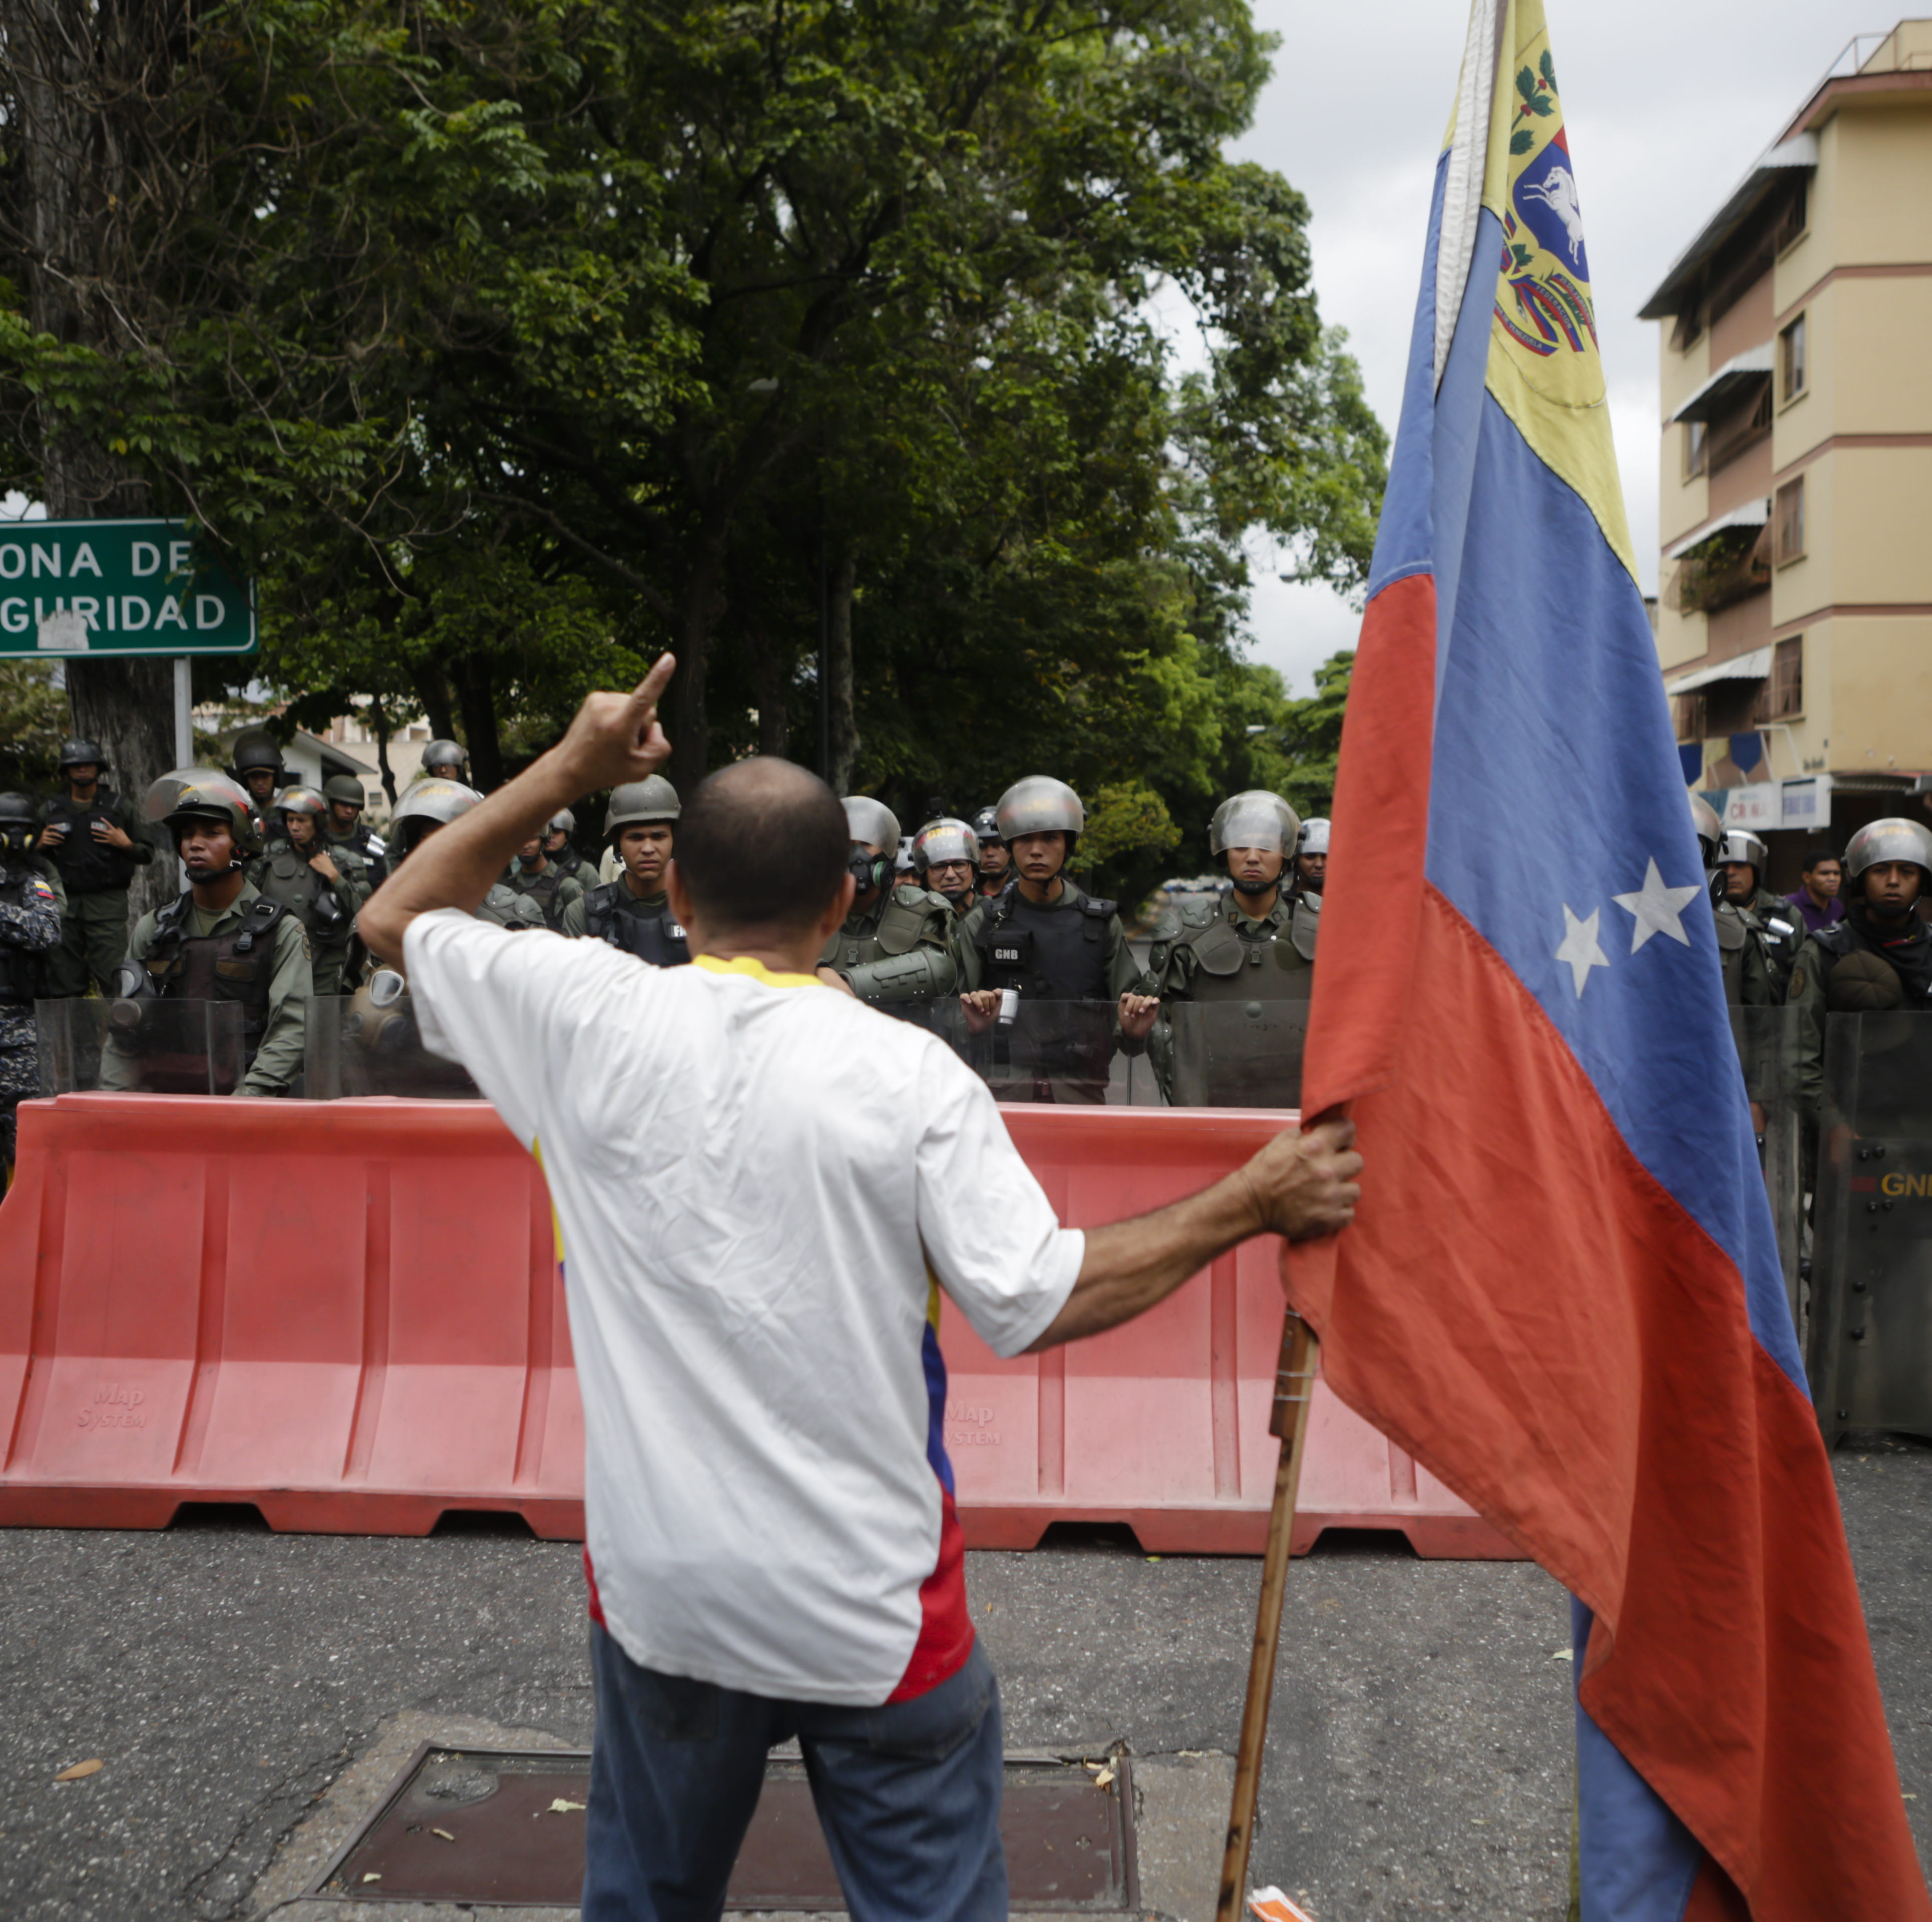 US army could help Venezuela with nonviolent resistance against Maduro: West Point prof